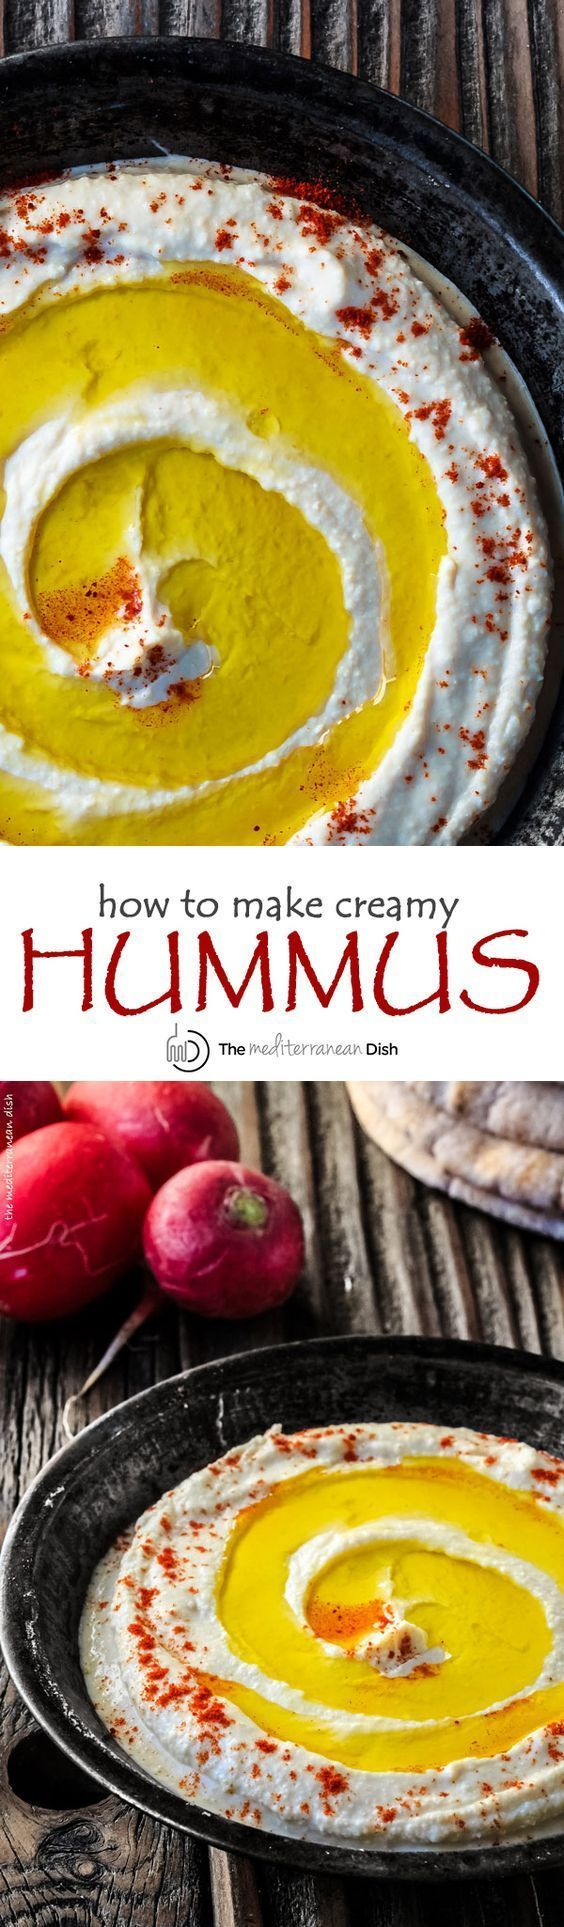 How to Make Traditional Creamy Hummus. Learn the secrets to the creamiest, most authentic hummus bite you'll have. Step-by-step pictures included on The Mediterranean Dish. Once you try this recipe, you won't go back!